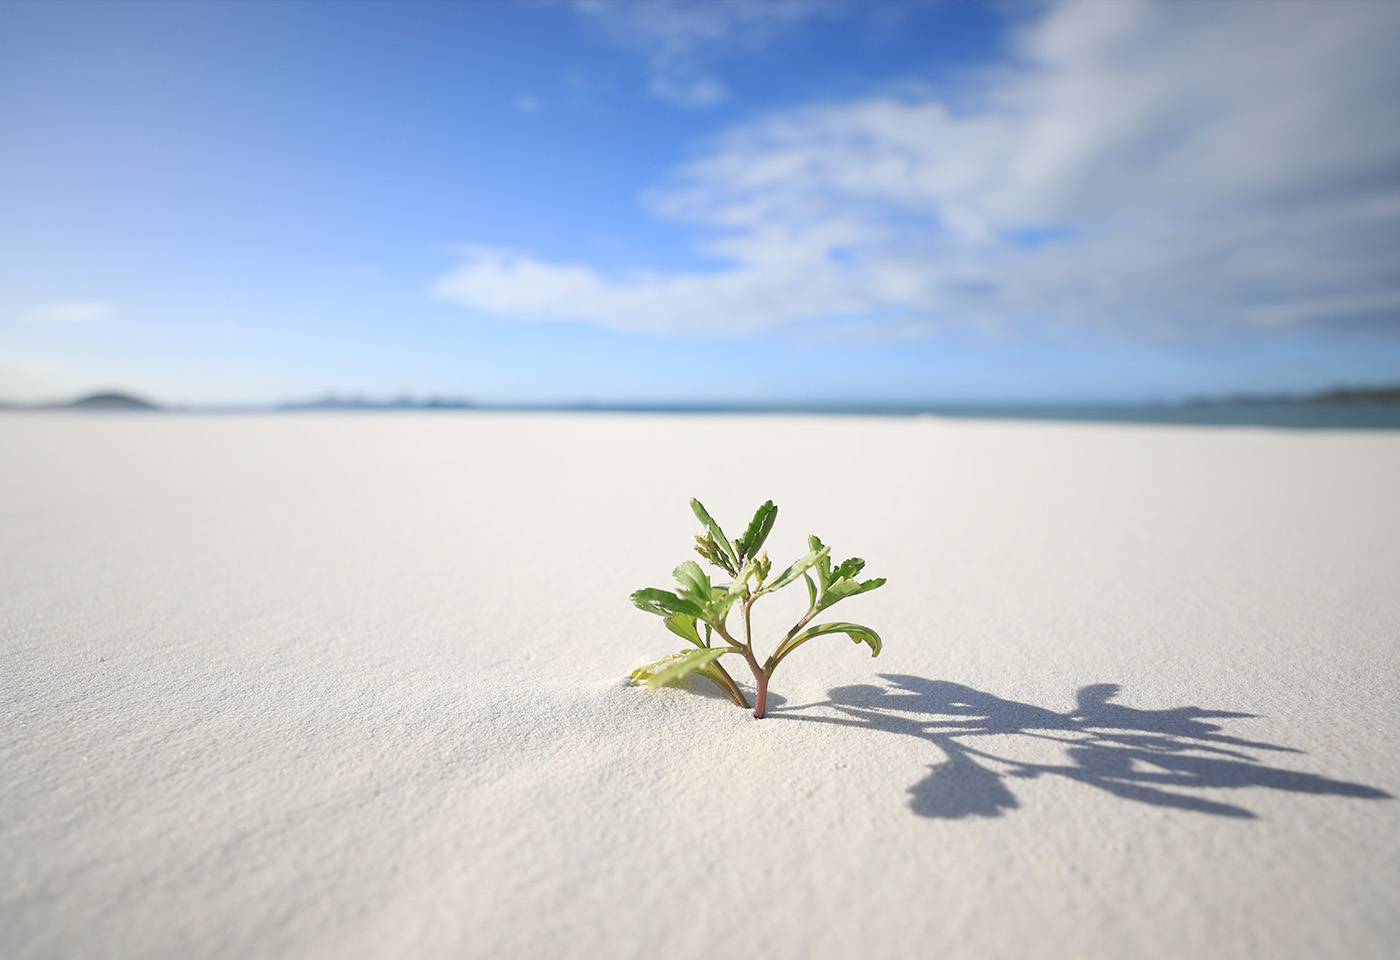 Small plant in sand